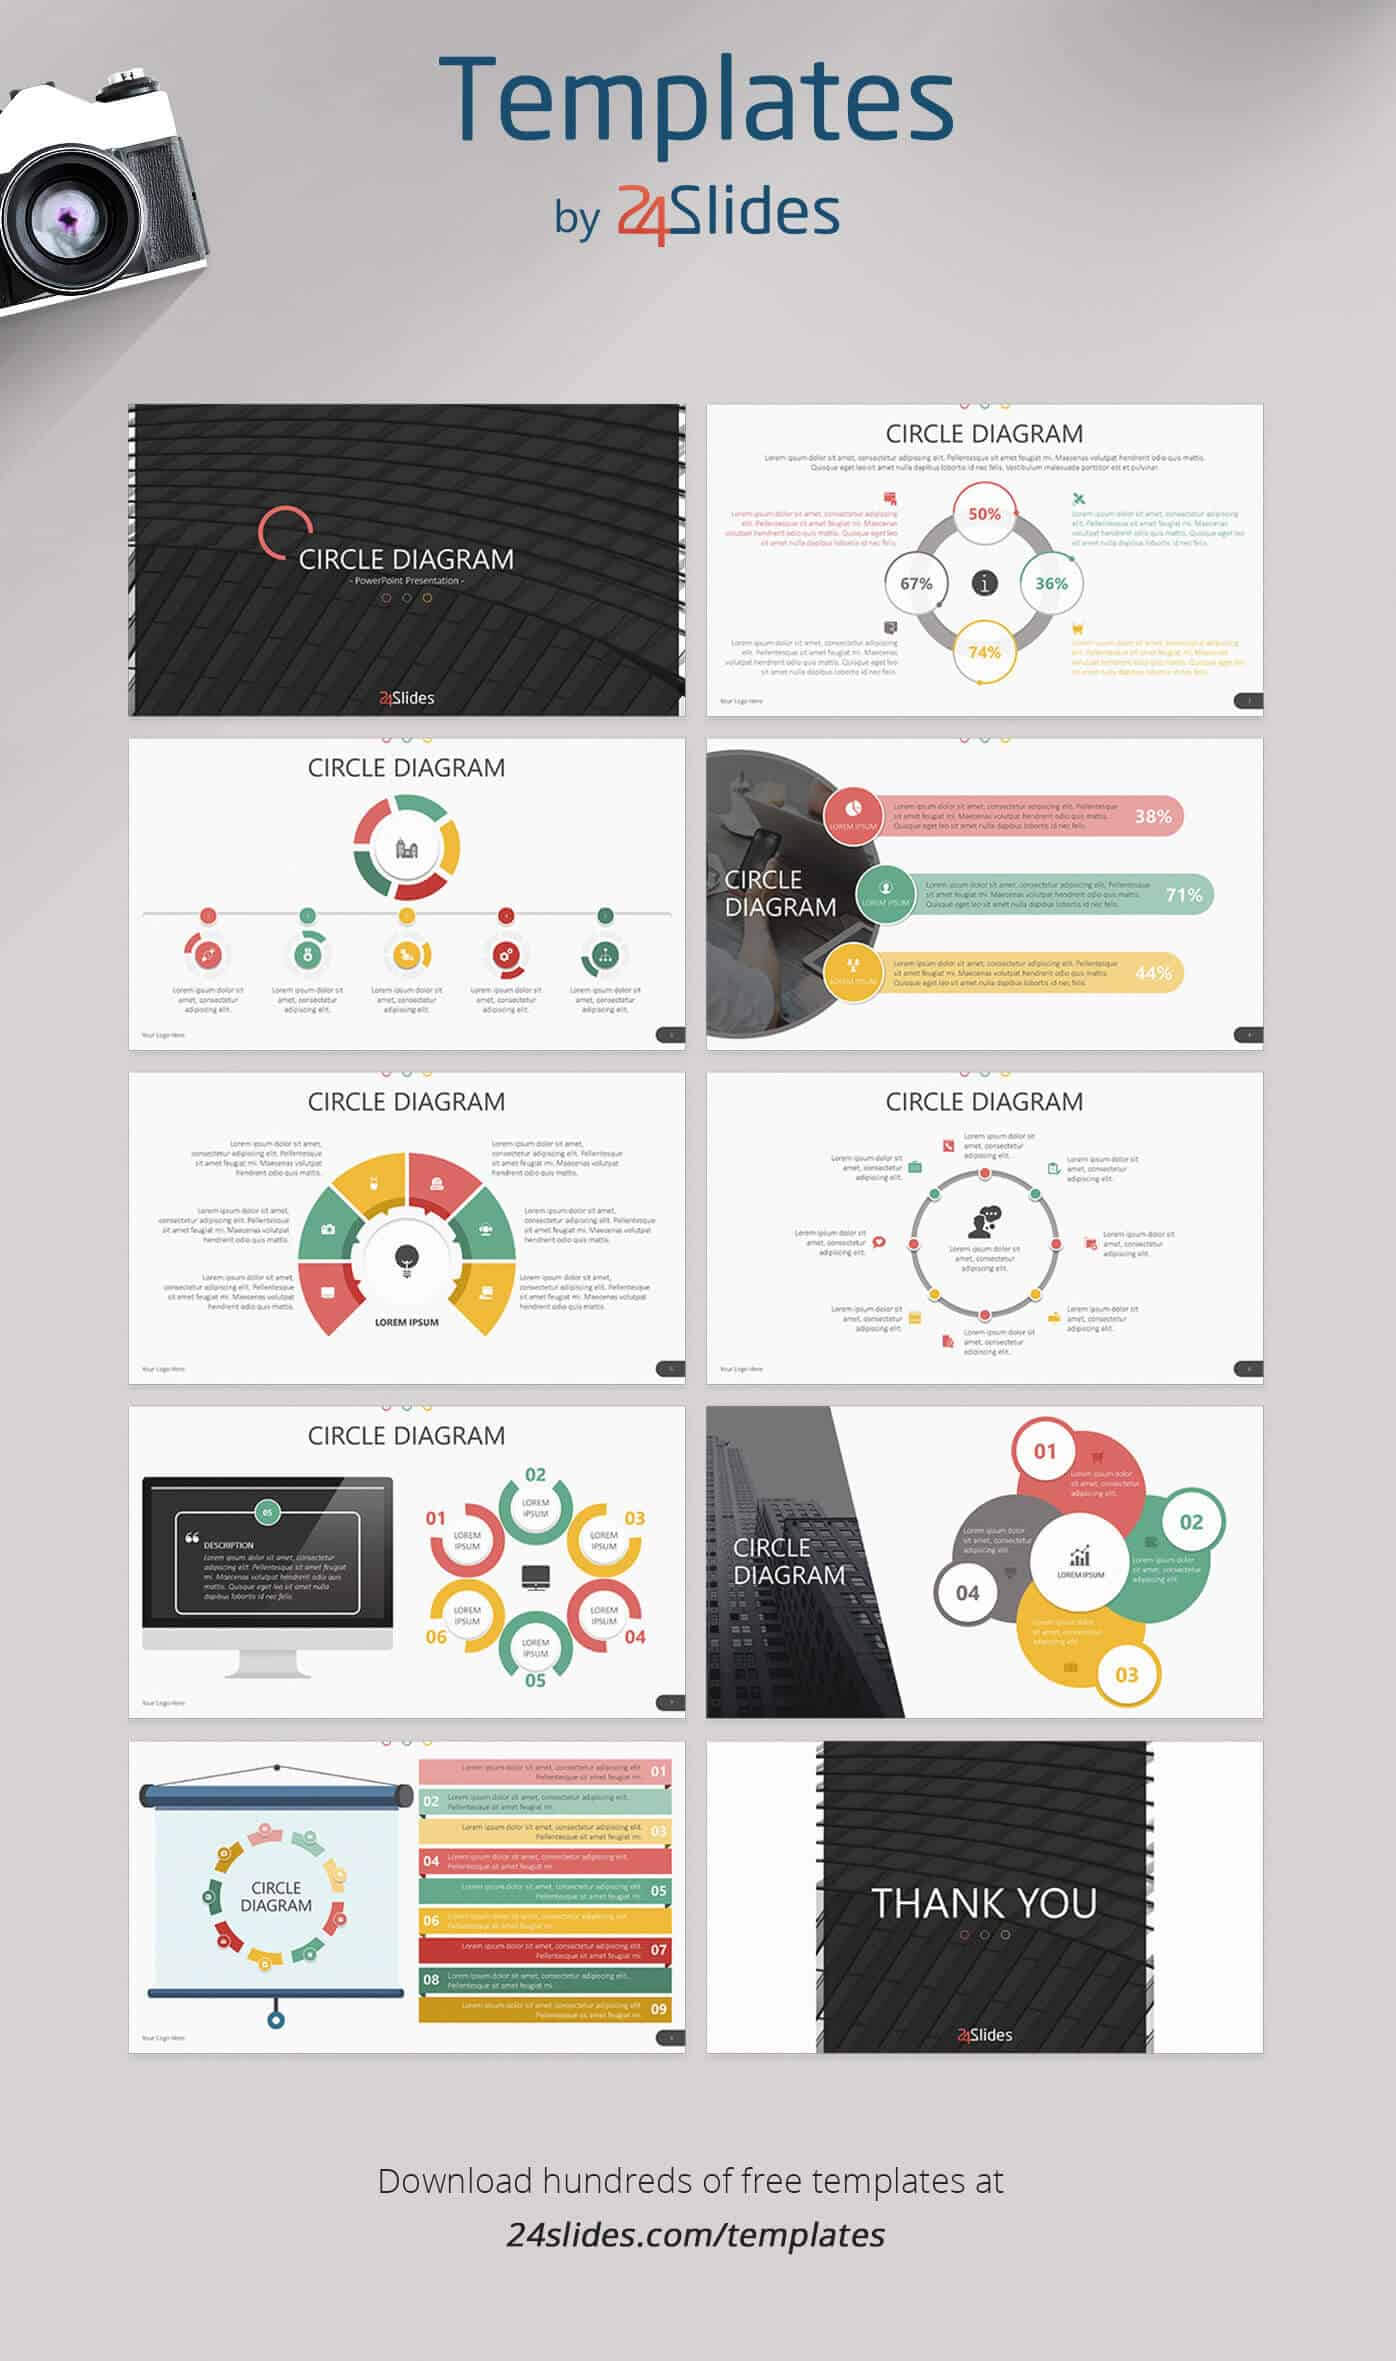 15 Fun And Colorful Free Powerpoint Templates | Present Better Intended For Fun Powerpoint Templates Free Download